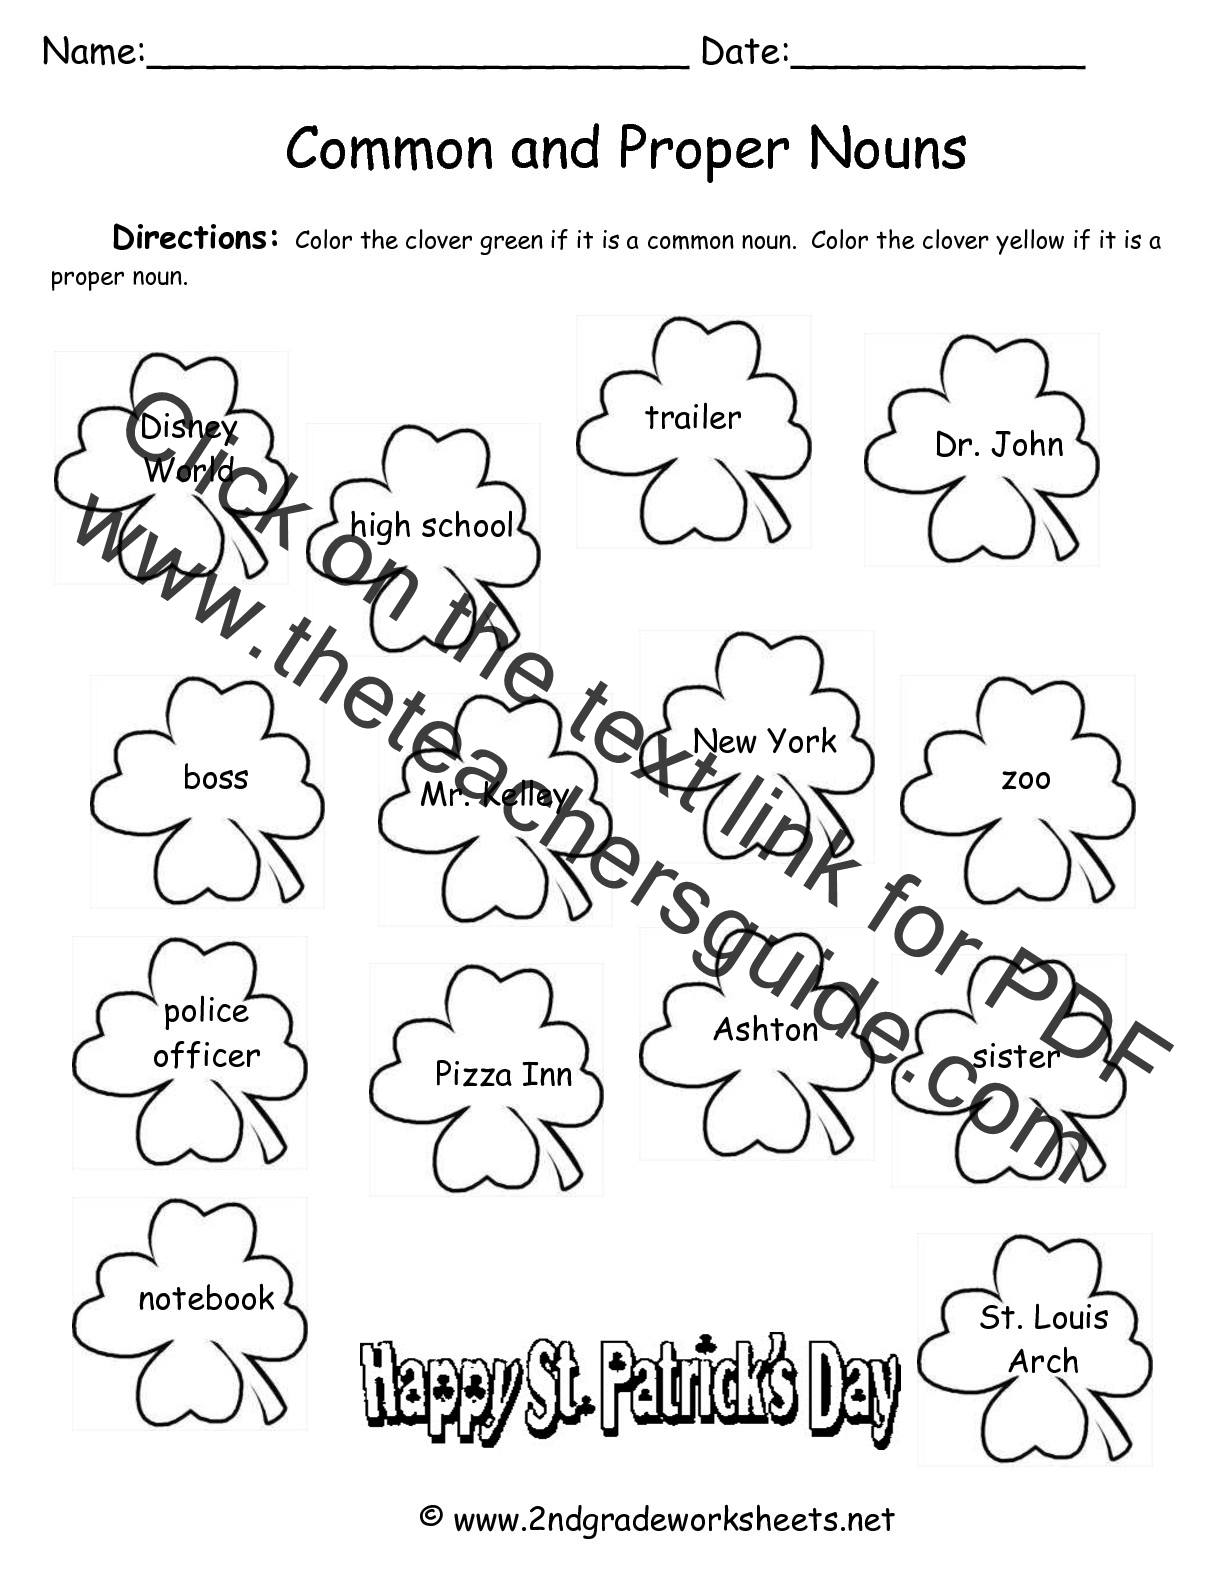 Worksheet Noun Activities For Grade 2 Mikyu Free Worksheet – Proper Noun Worksheets